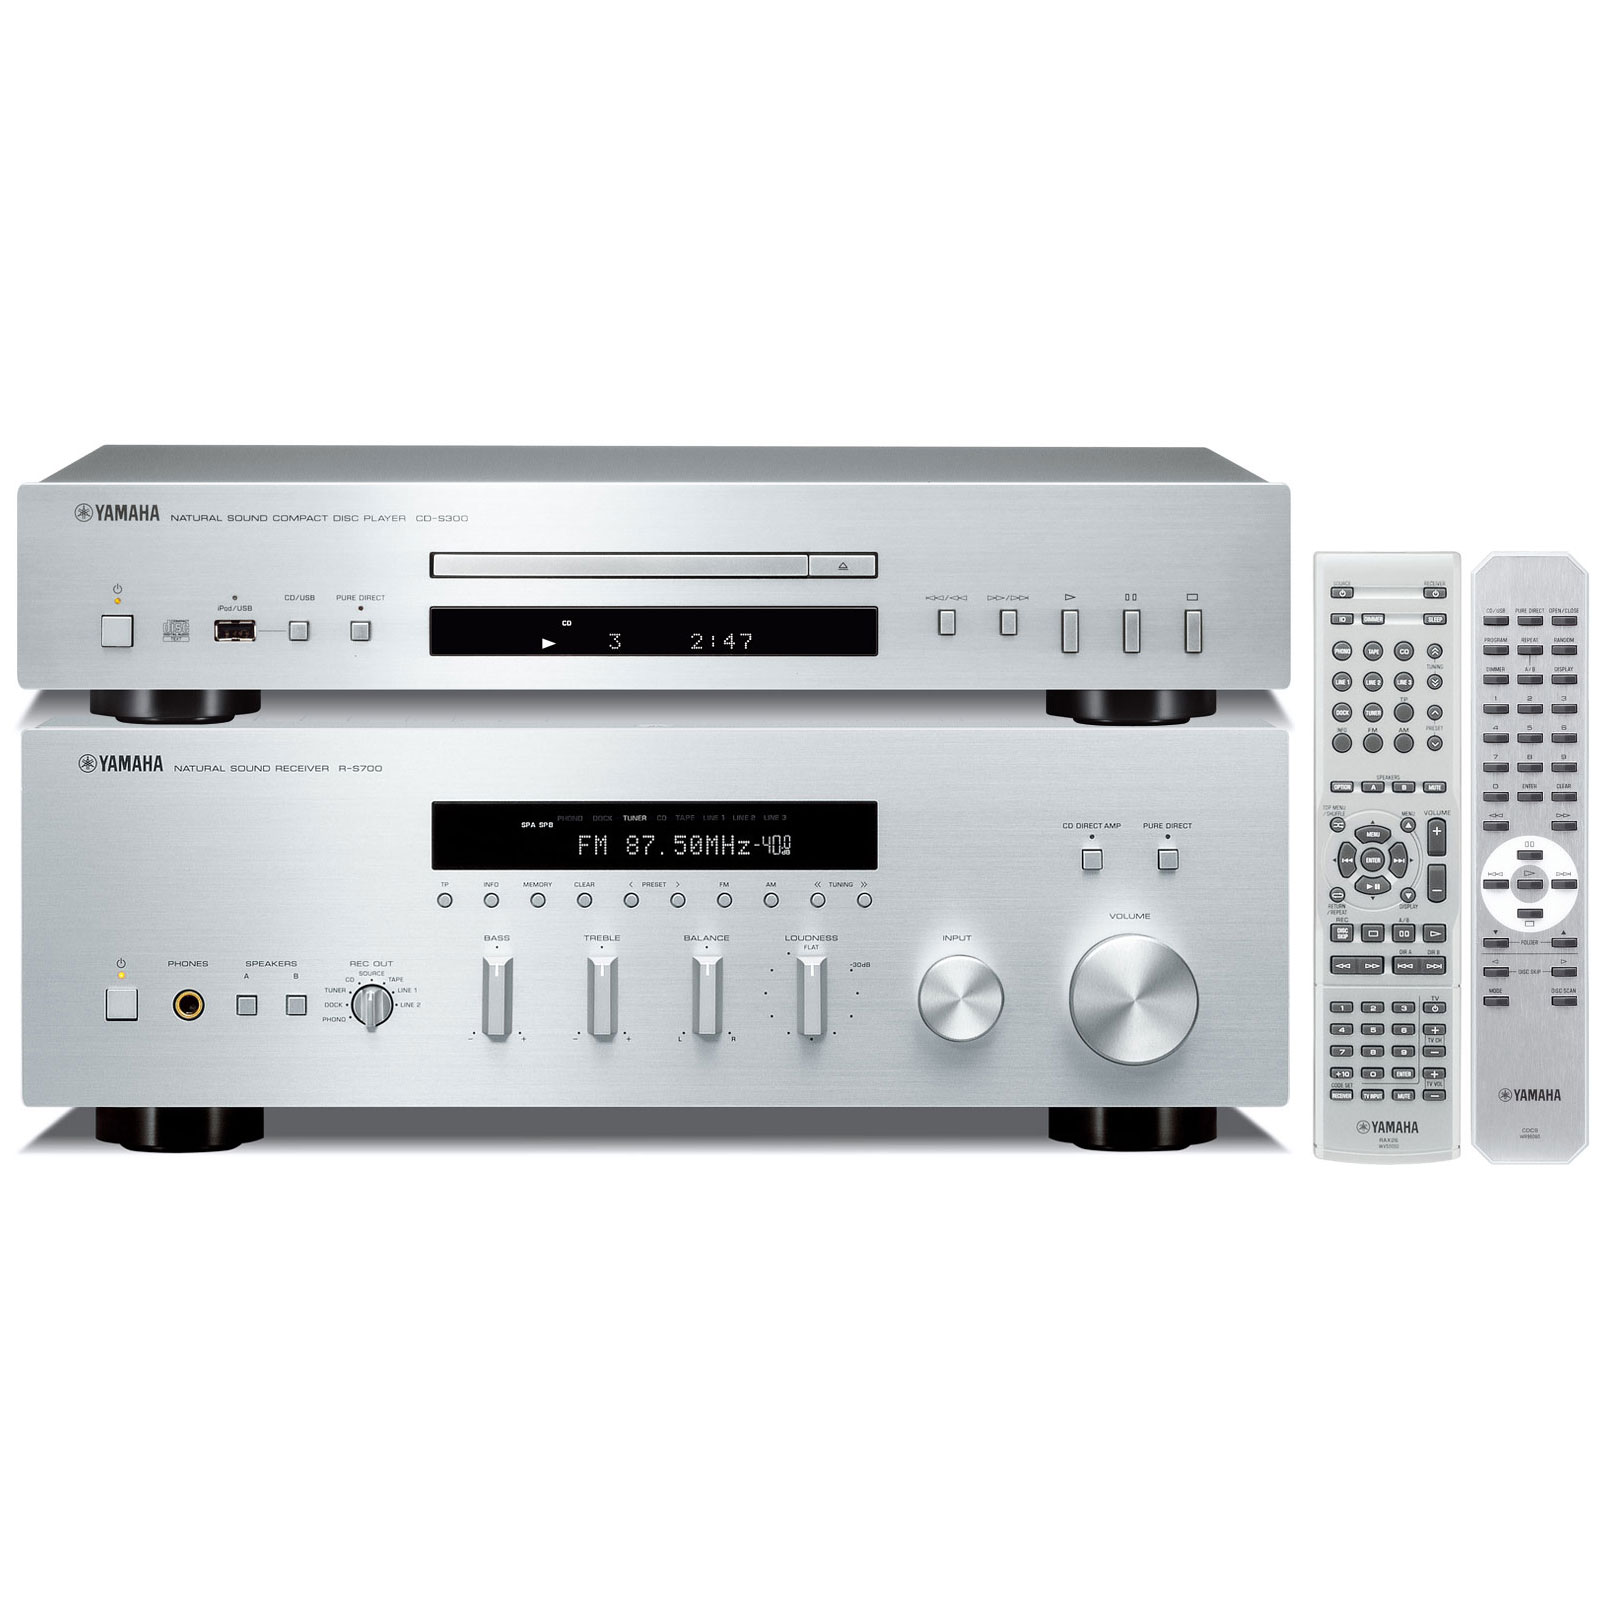 yamaha r s700 cd s300 argent amplificateur hifi yamaha. Black Bedroom Furniture Sets. Home Design Ideas